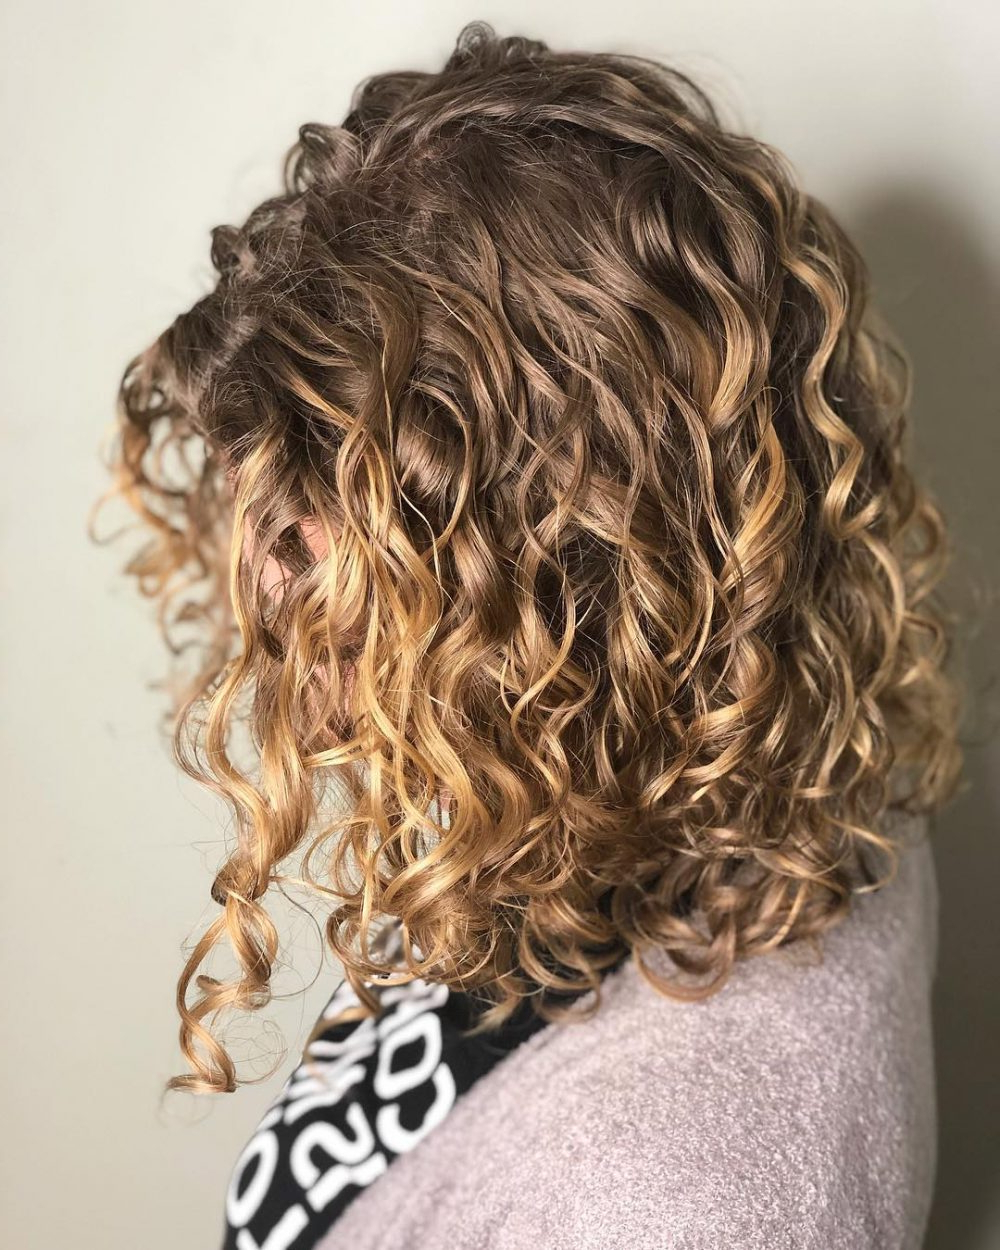 30 Gorgeous Medium Length Curly Hairstyles For Women In 2019 Throughout Well Known Thick Curly Hair Medium Hairstyles (View 2 of 20)